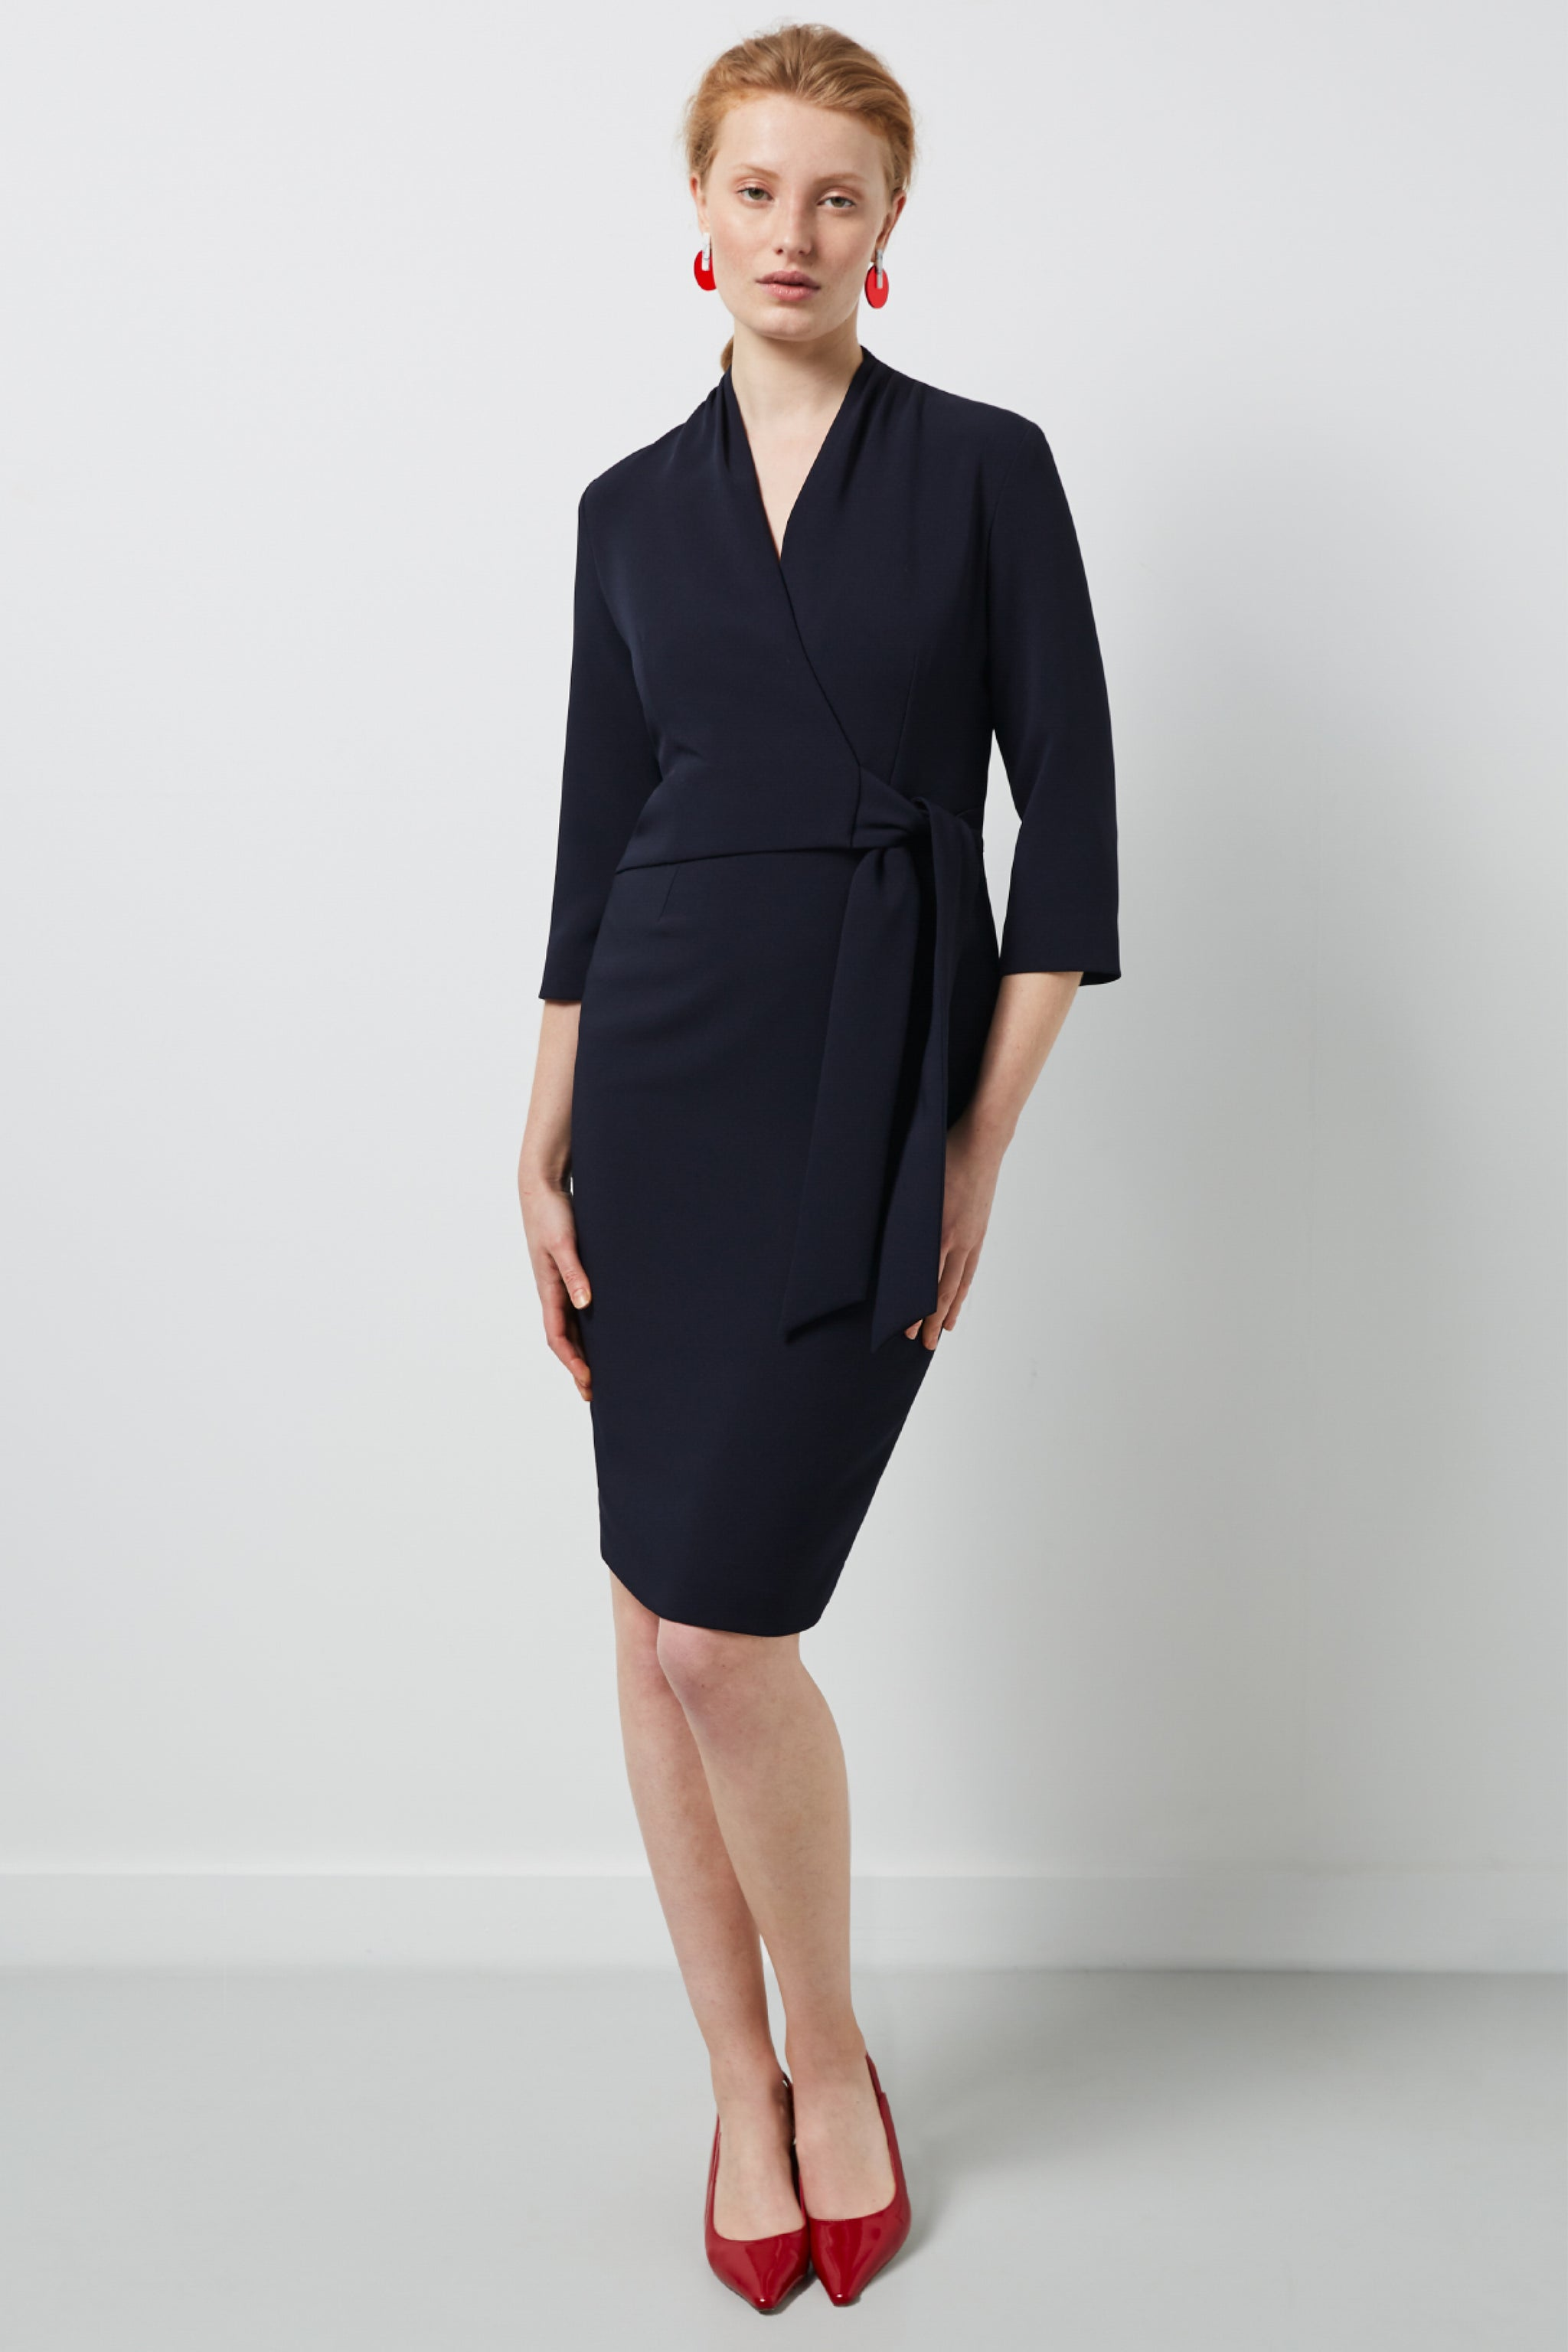 Montague Dress Navy